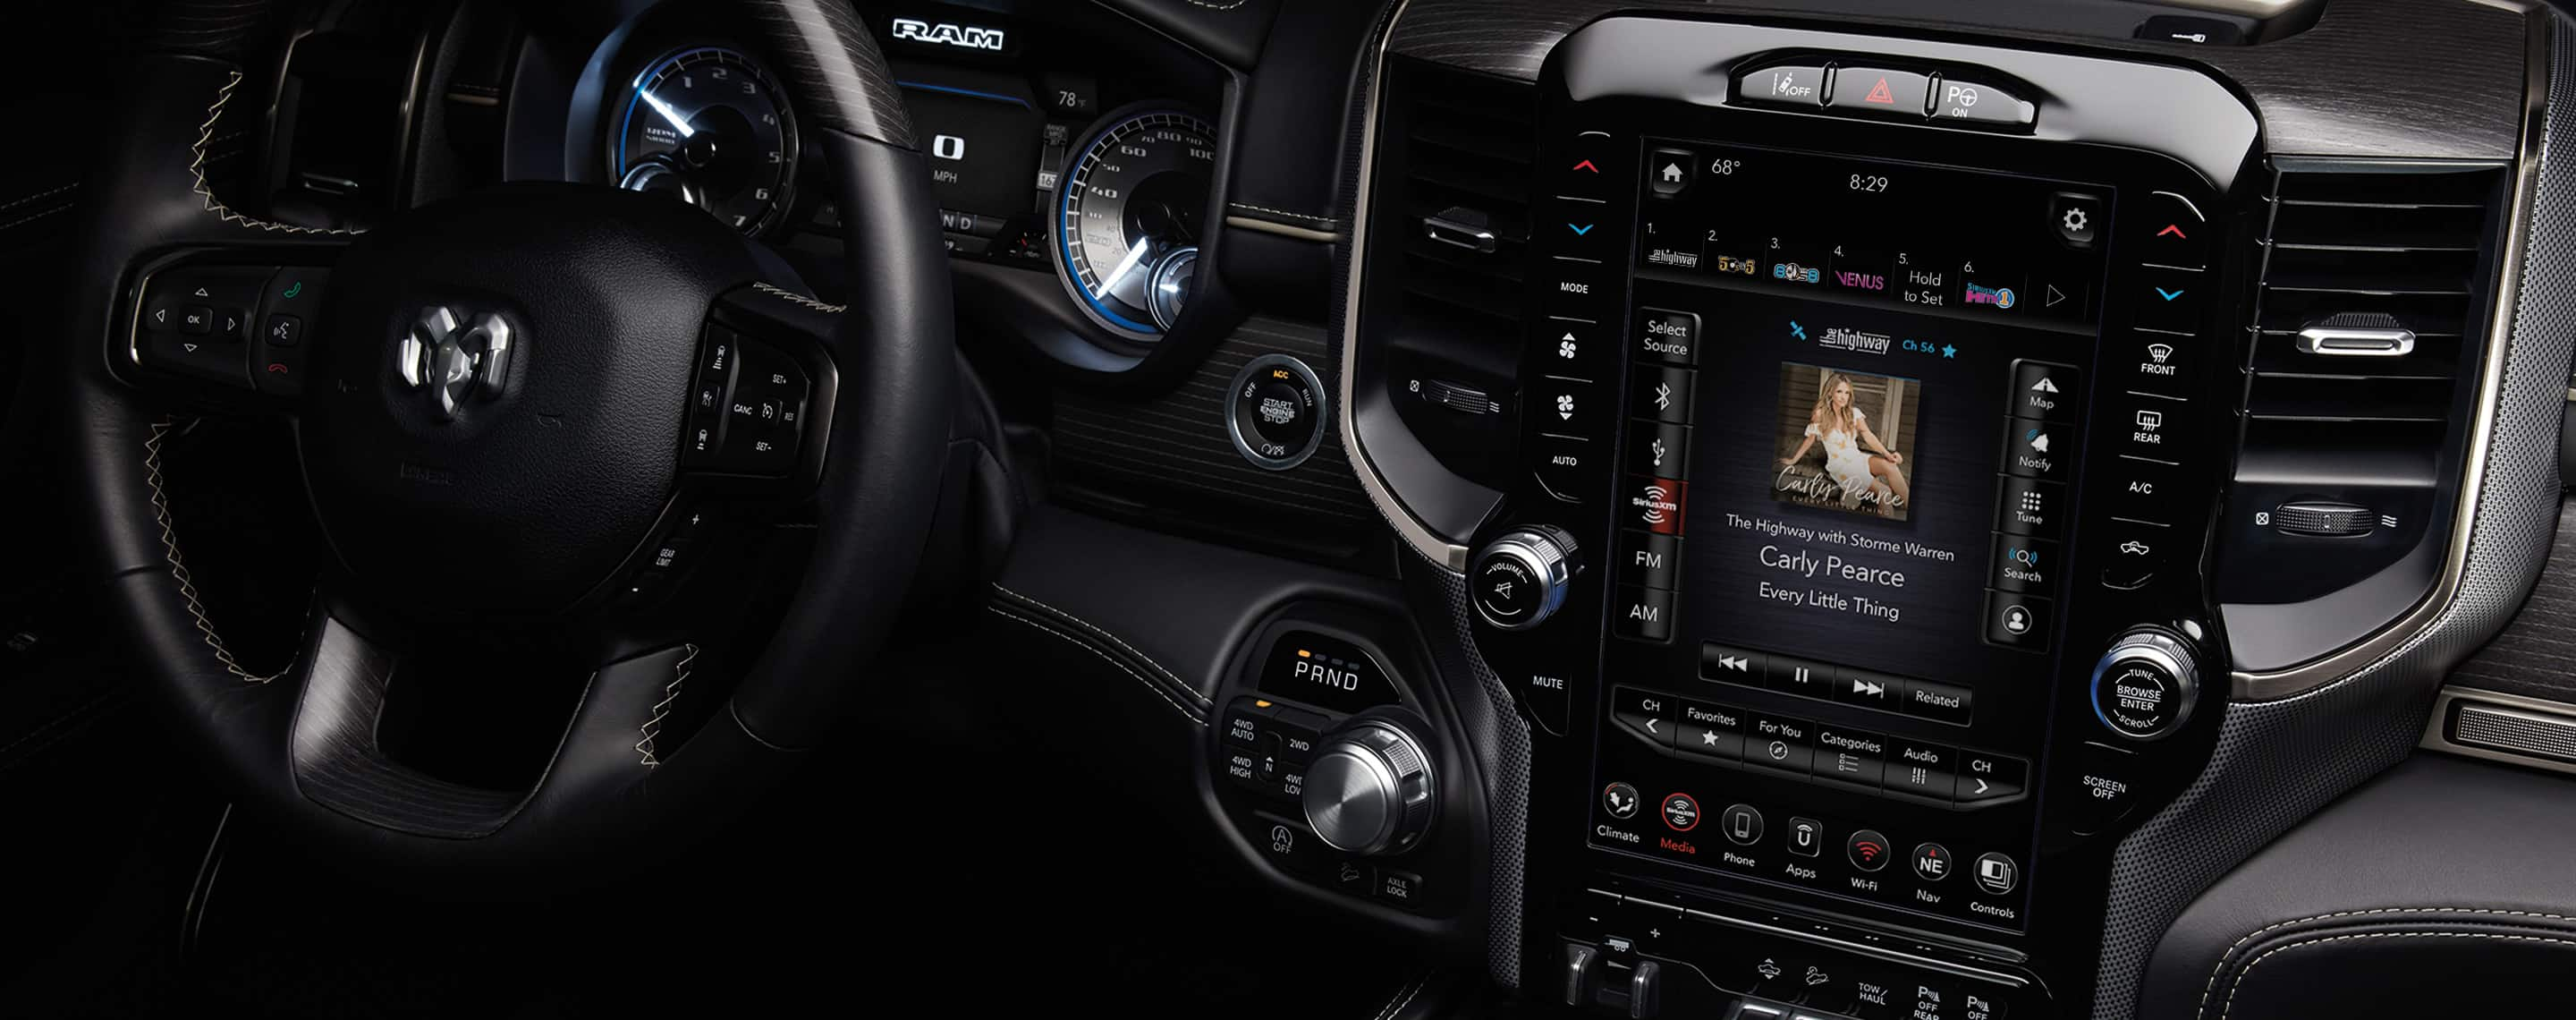 Touchscreen in Ram 1500 showing a music selection.